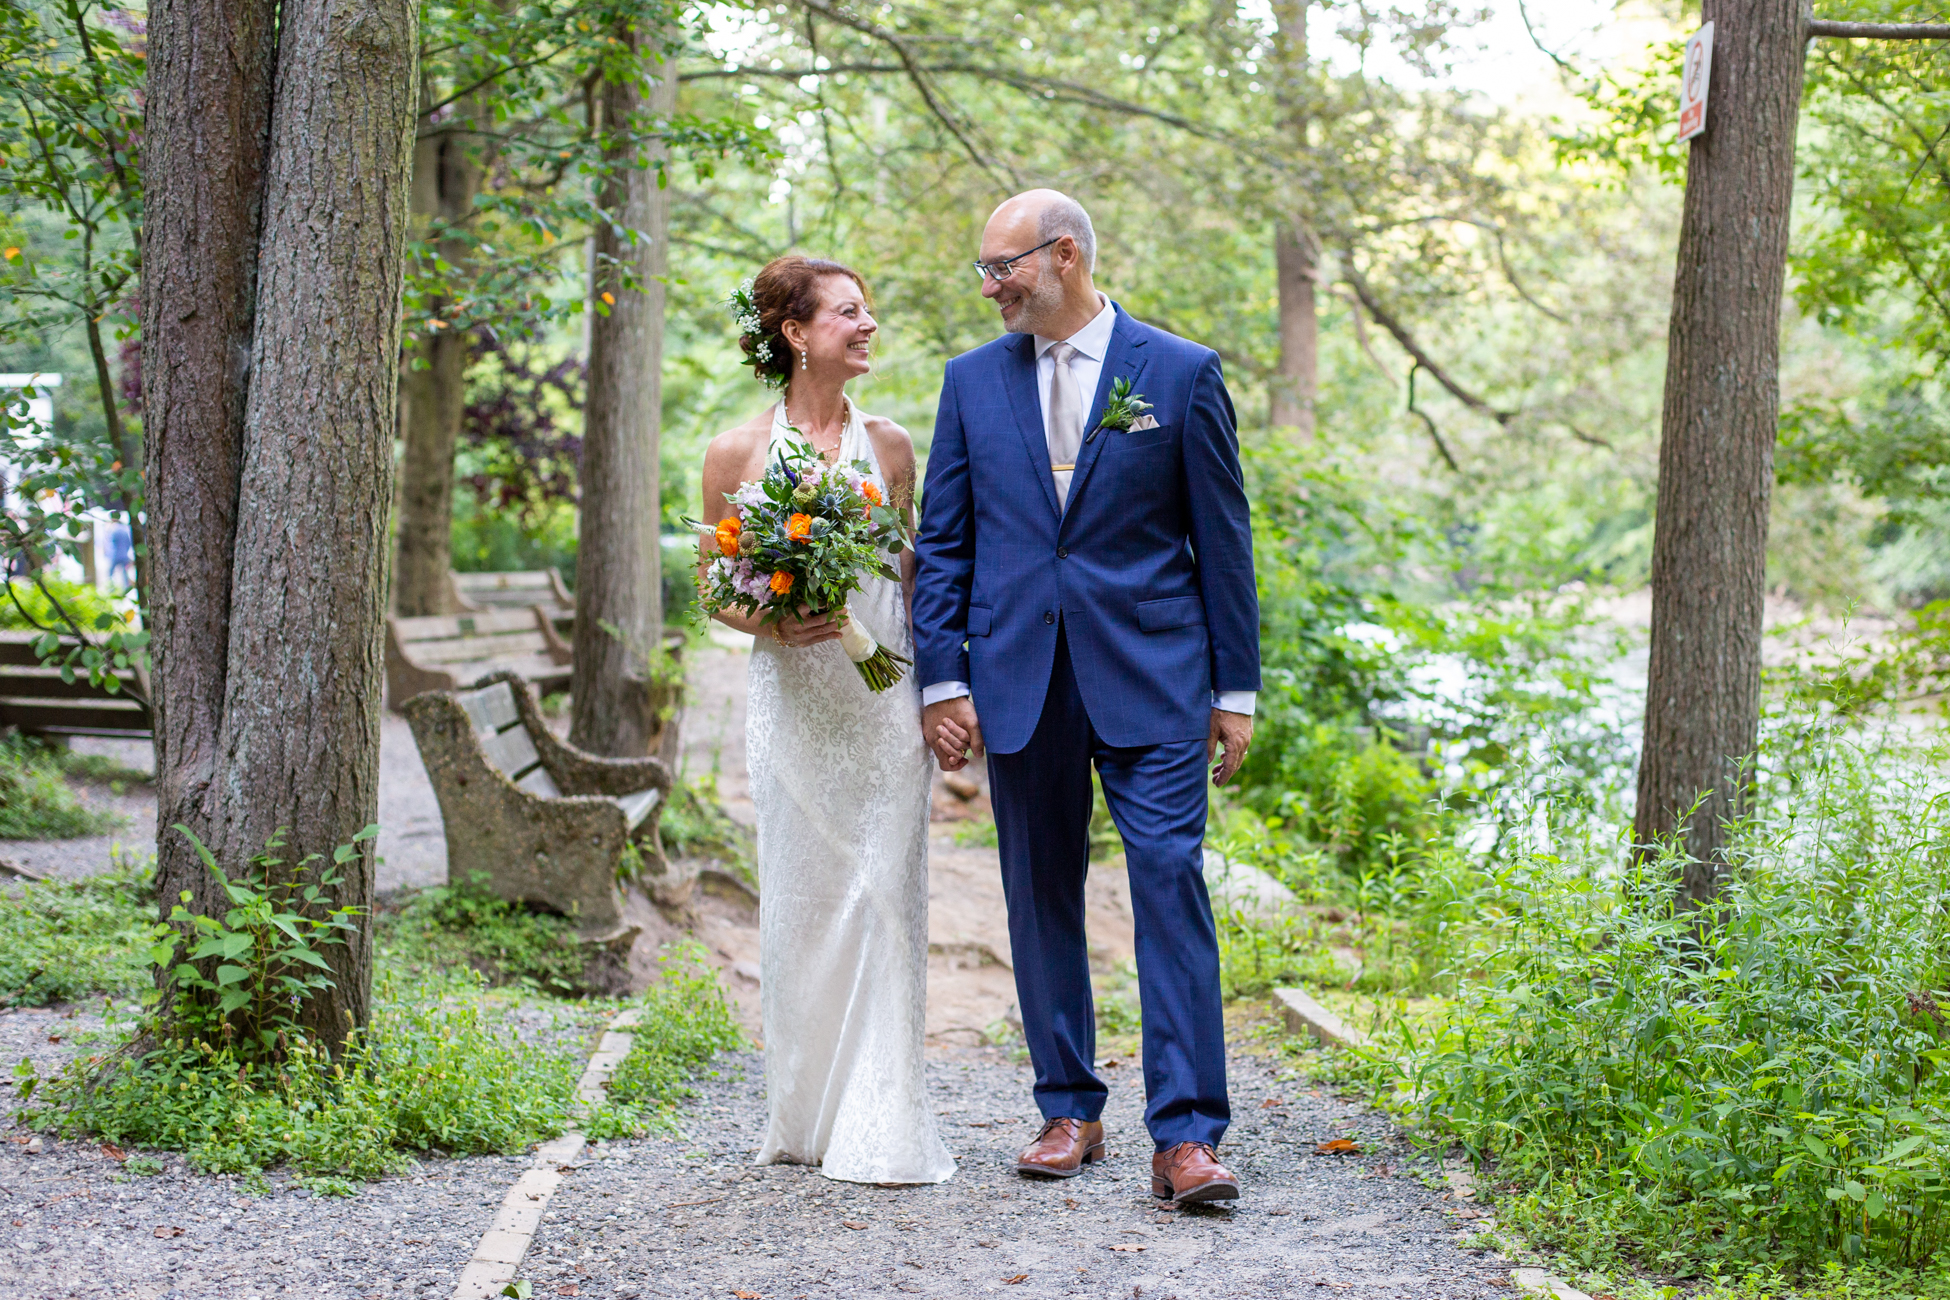 Melton-Kessler Wedding at Valley Green Inn by Avi Loren Fox LLC-37.jpg